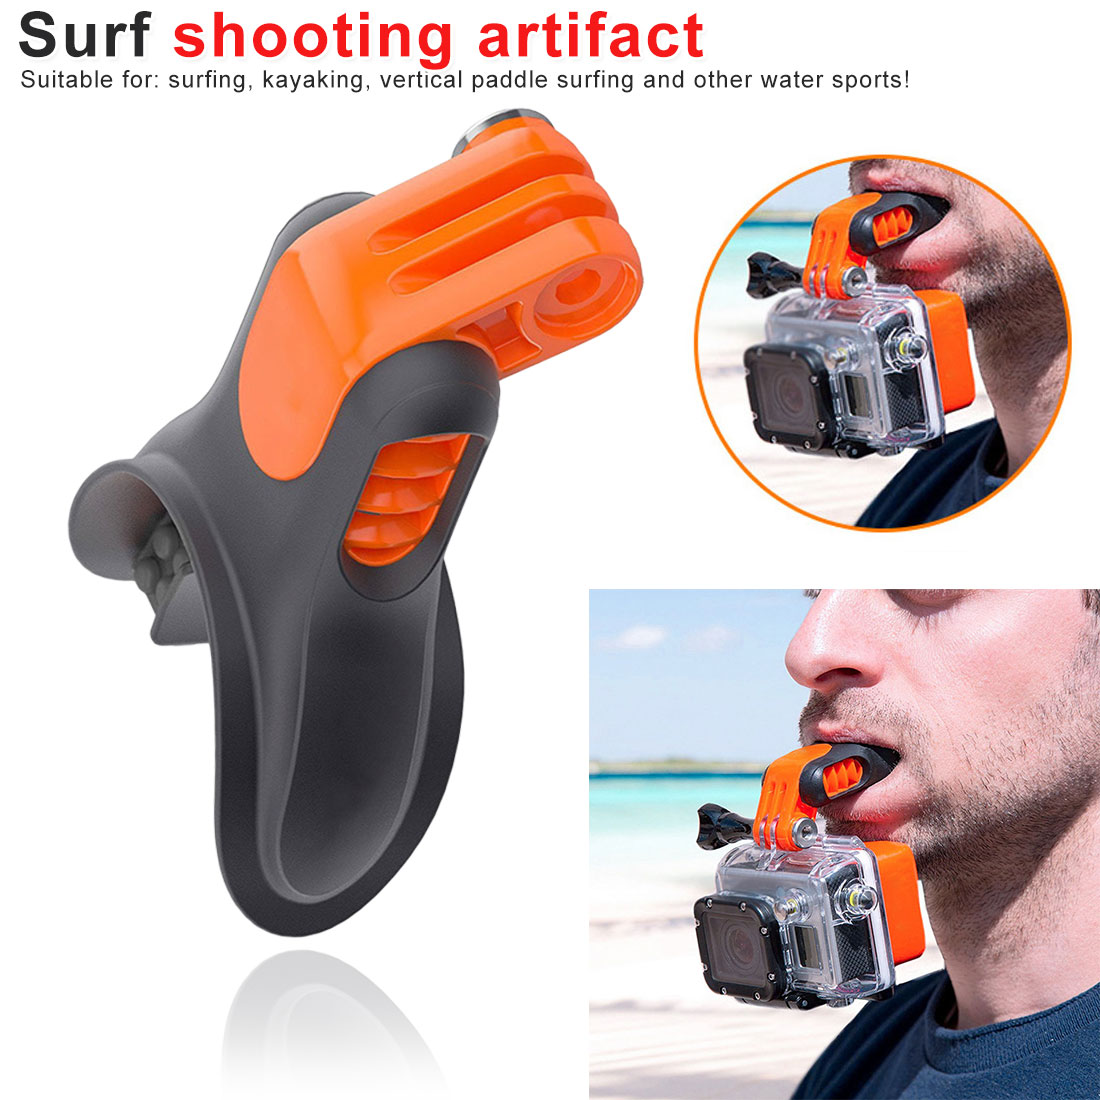 Action Camera Teeth Braces Holder Mouth Mount for GoPro Hero Xiaomi Yi SJCAM Surfing Diving Shoot Camera Accessories